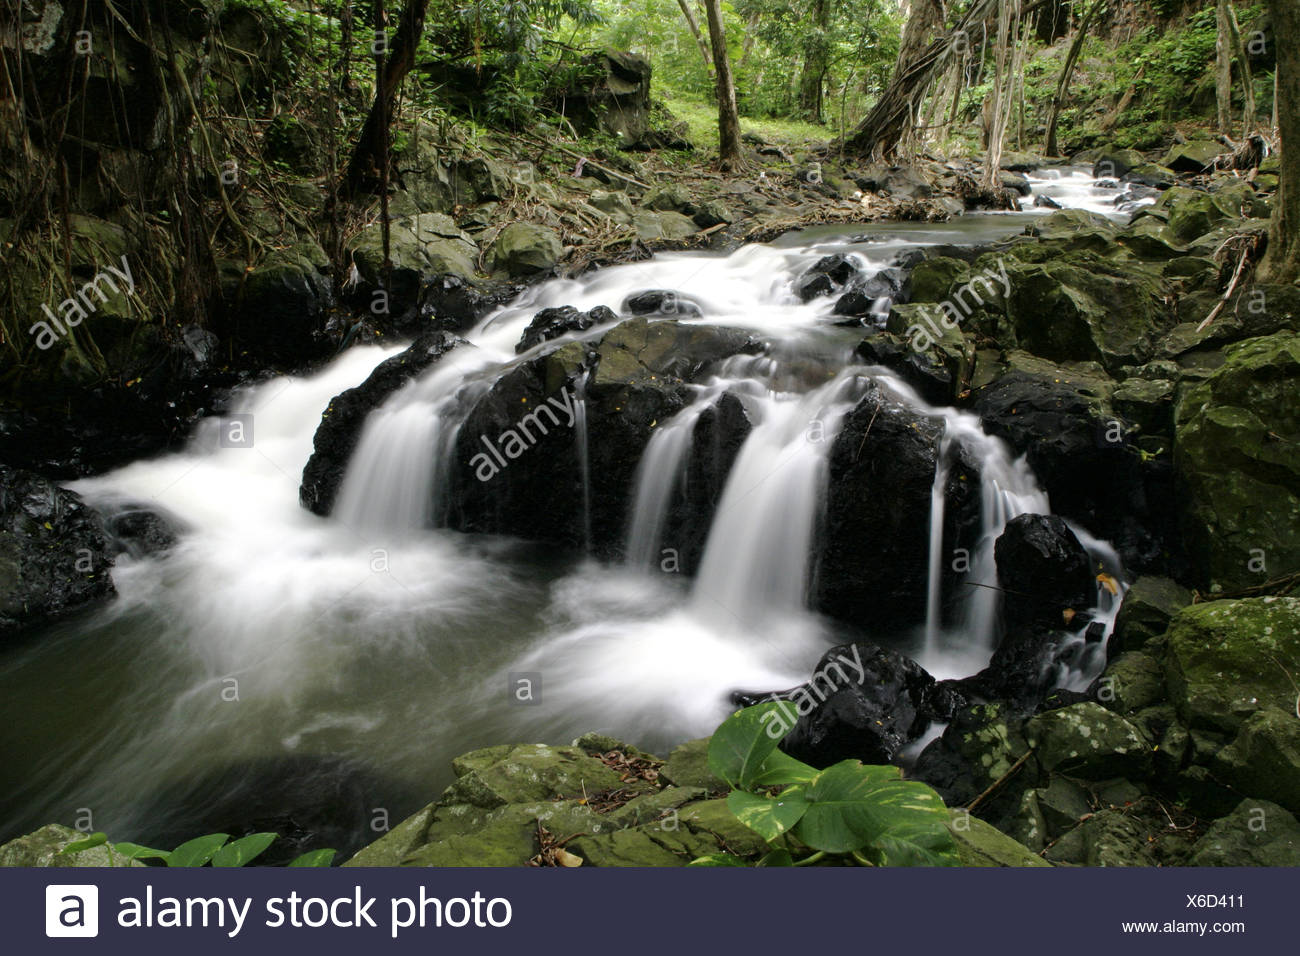 Scenic streams and waterfalls just below Kapena Falls near the Pali Highway,Oahu. Stock Photo